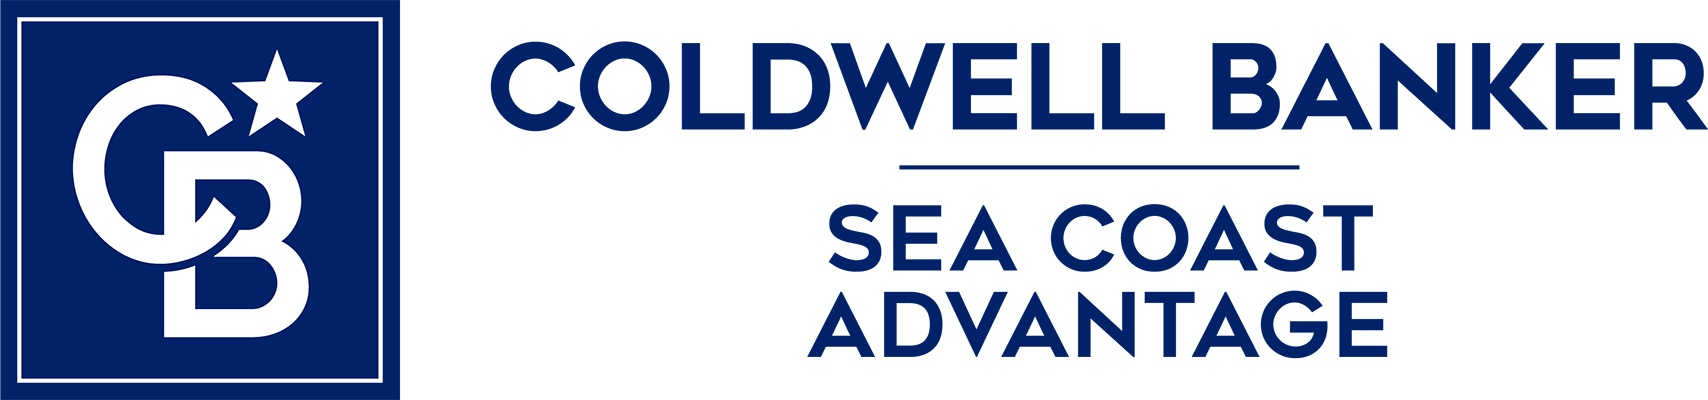 Mike Coble - Coldwell Banker Sea Coast Advantage Realty